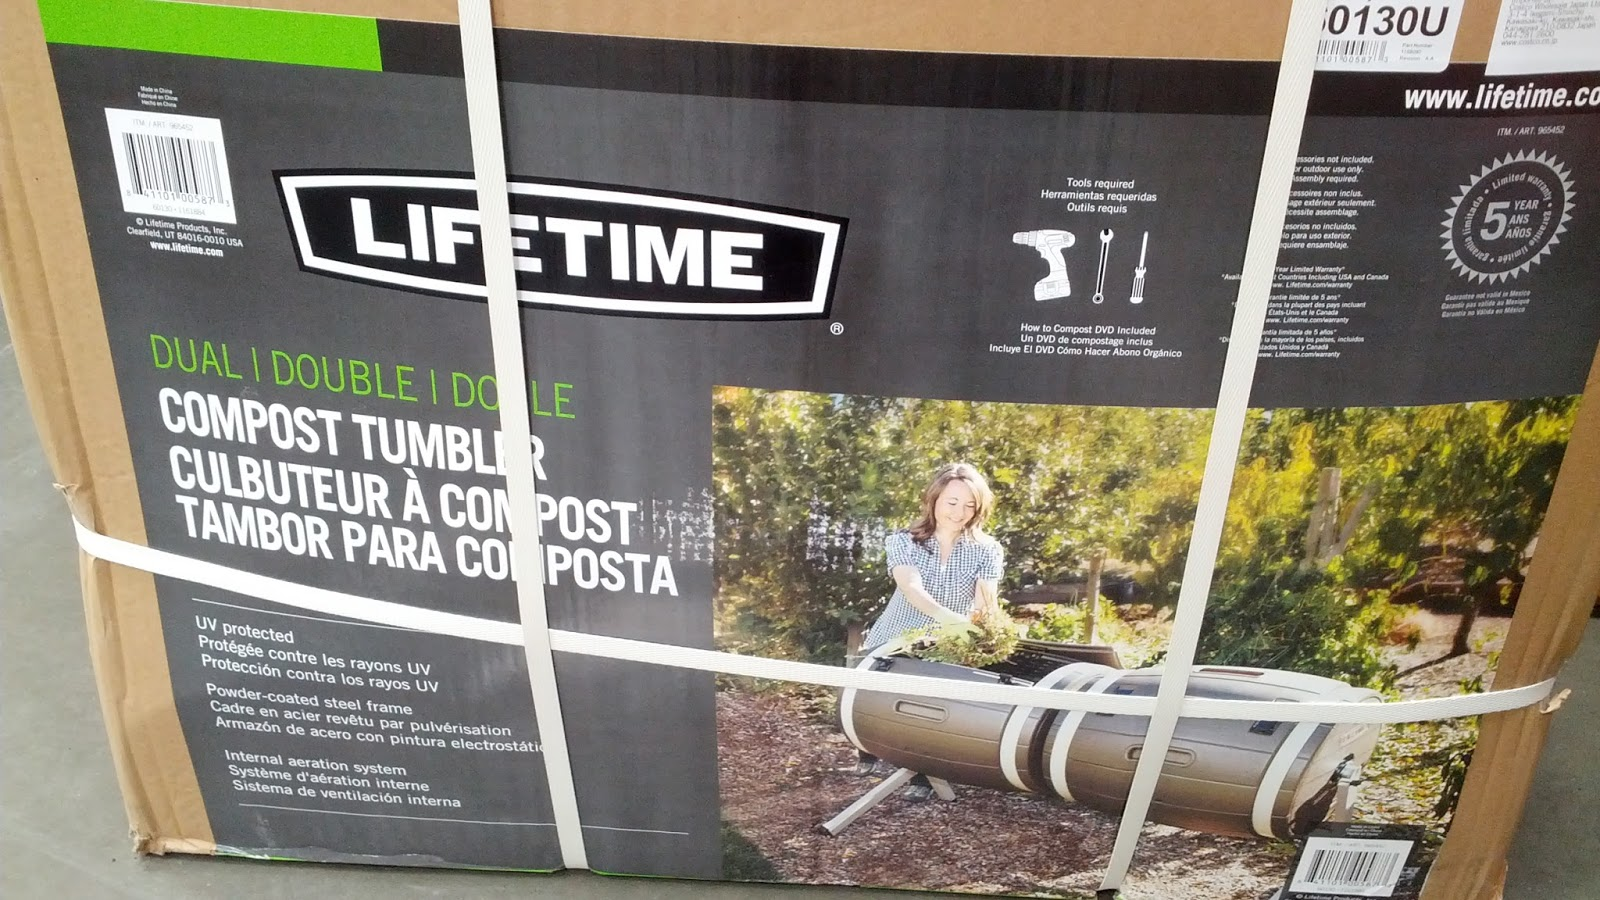 Save The Environment With Lifetime Dual Compost Tumbler